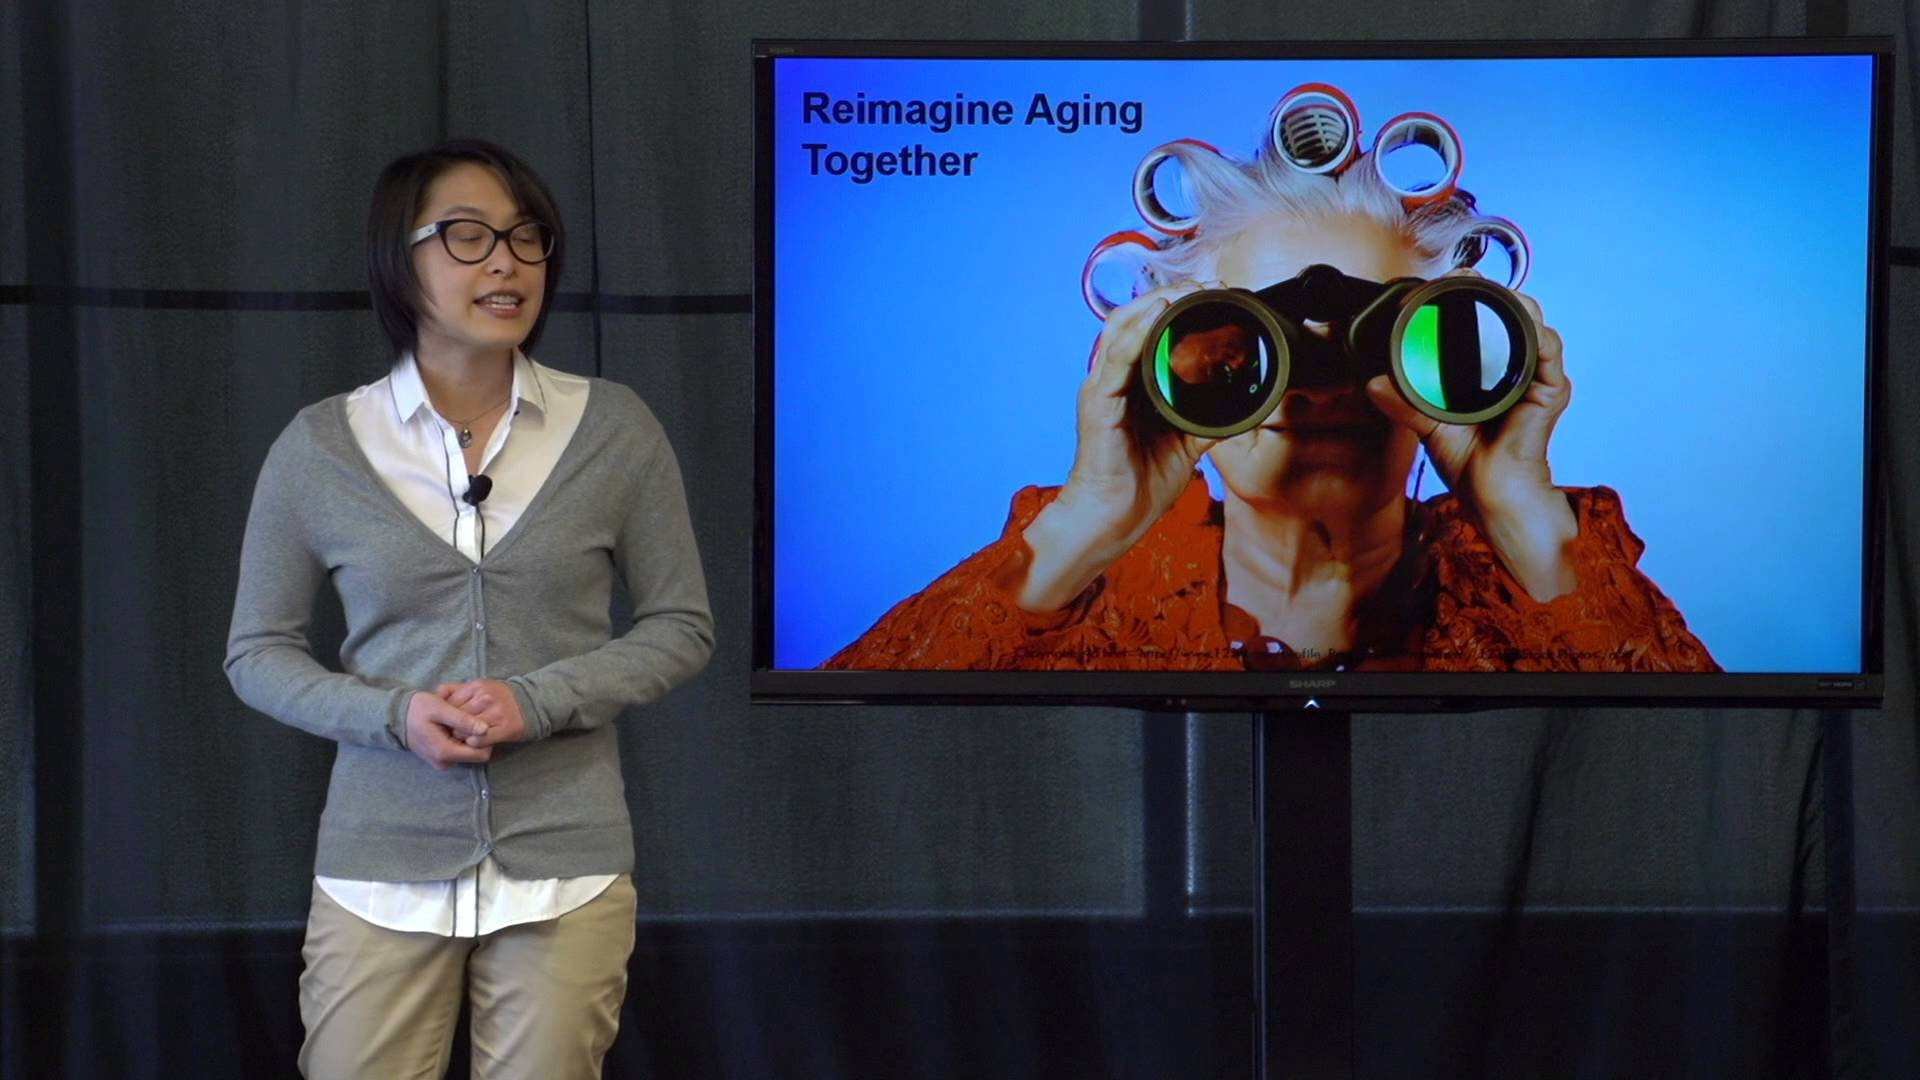 3MT's Sandy Lam on communities to support healthy aging